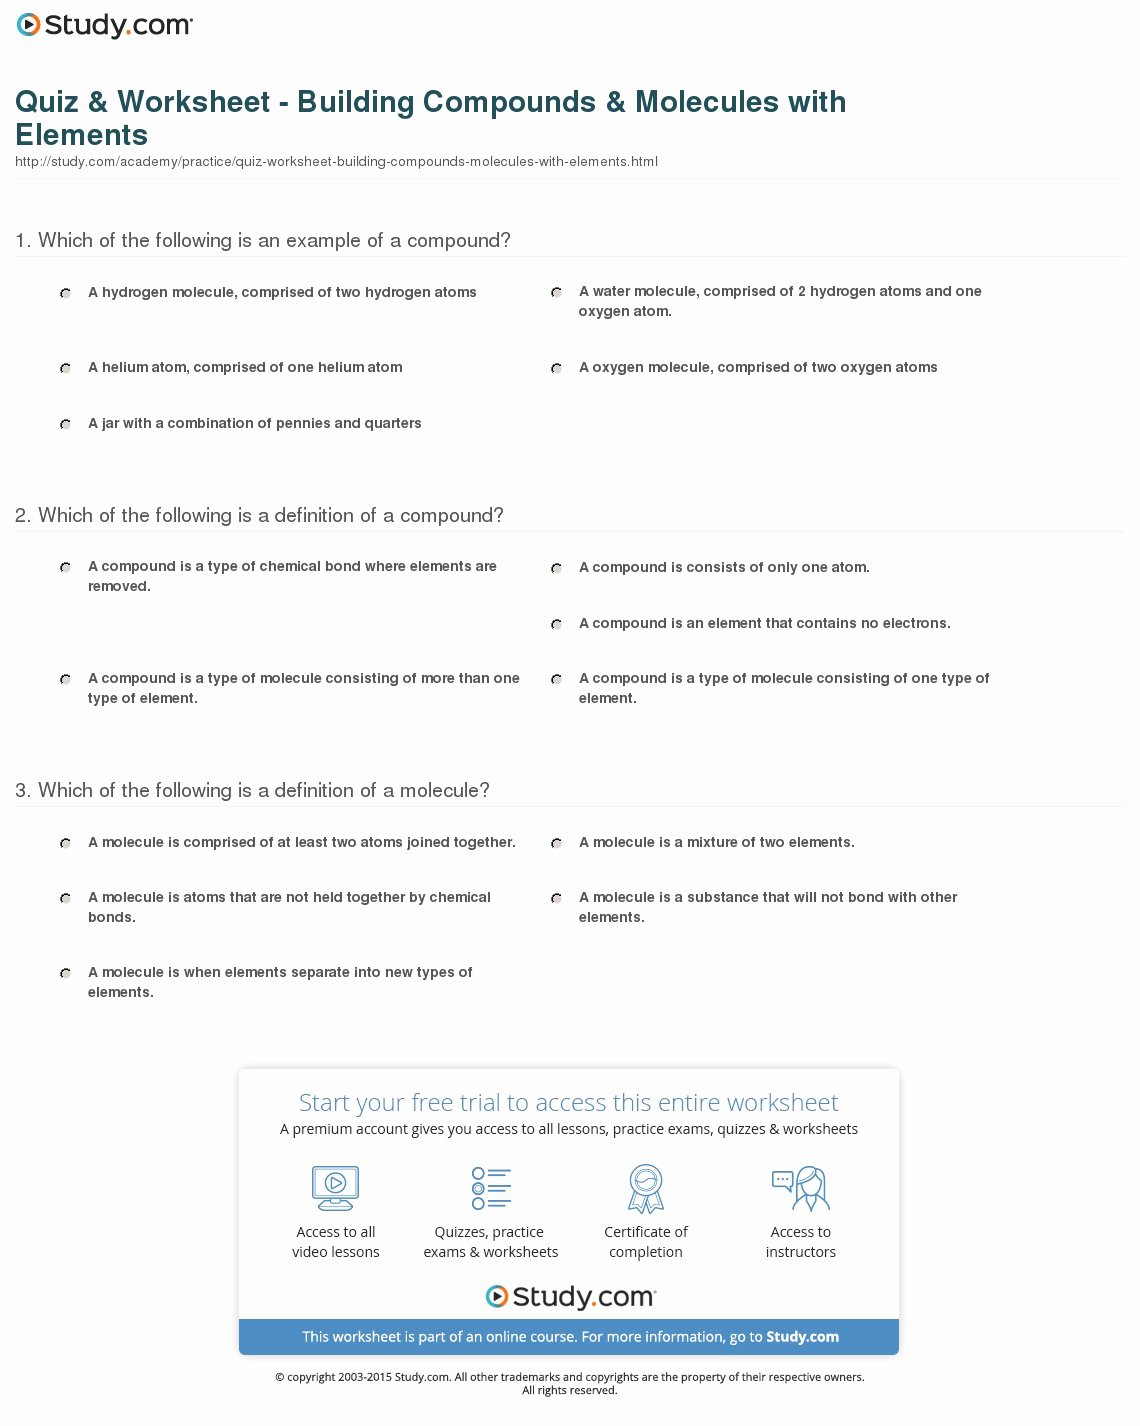 Molecules and Compounds Worksheet Best Of Quiz & Worksheet Building Pounds & Molecules with